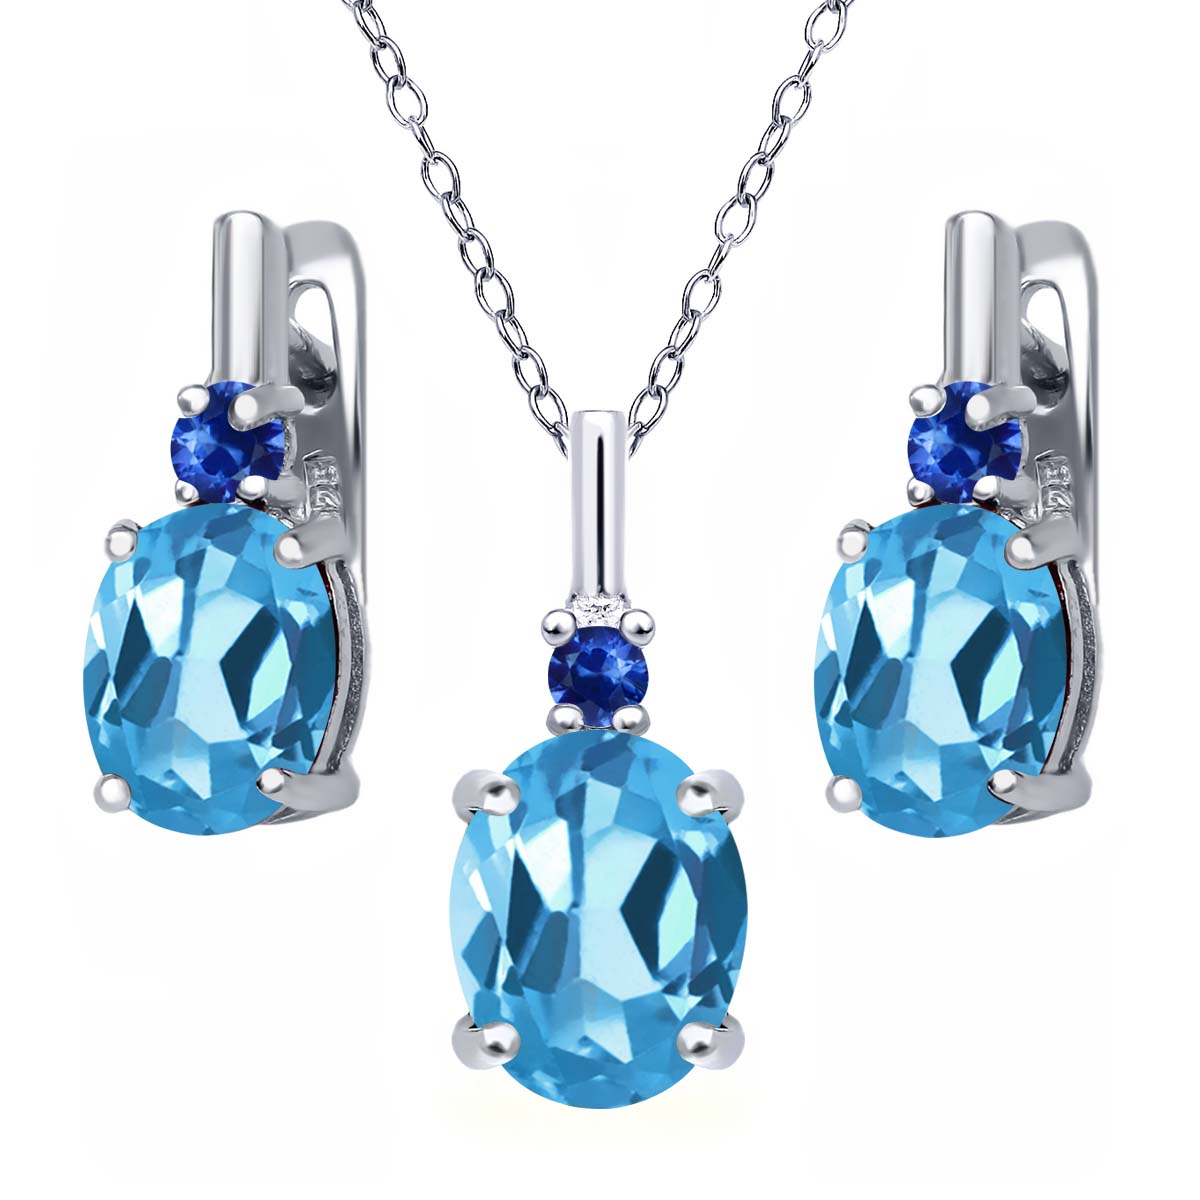 6.68 Ct Swiss Blue Topaz Blue Sapphire 925 Sterling Silver Pendant Earrings Set by